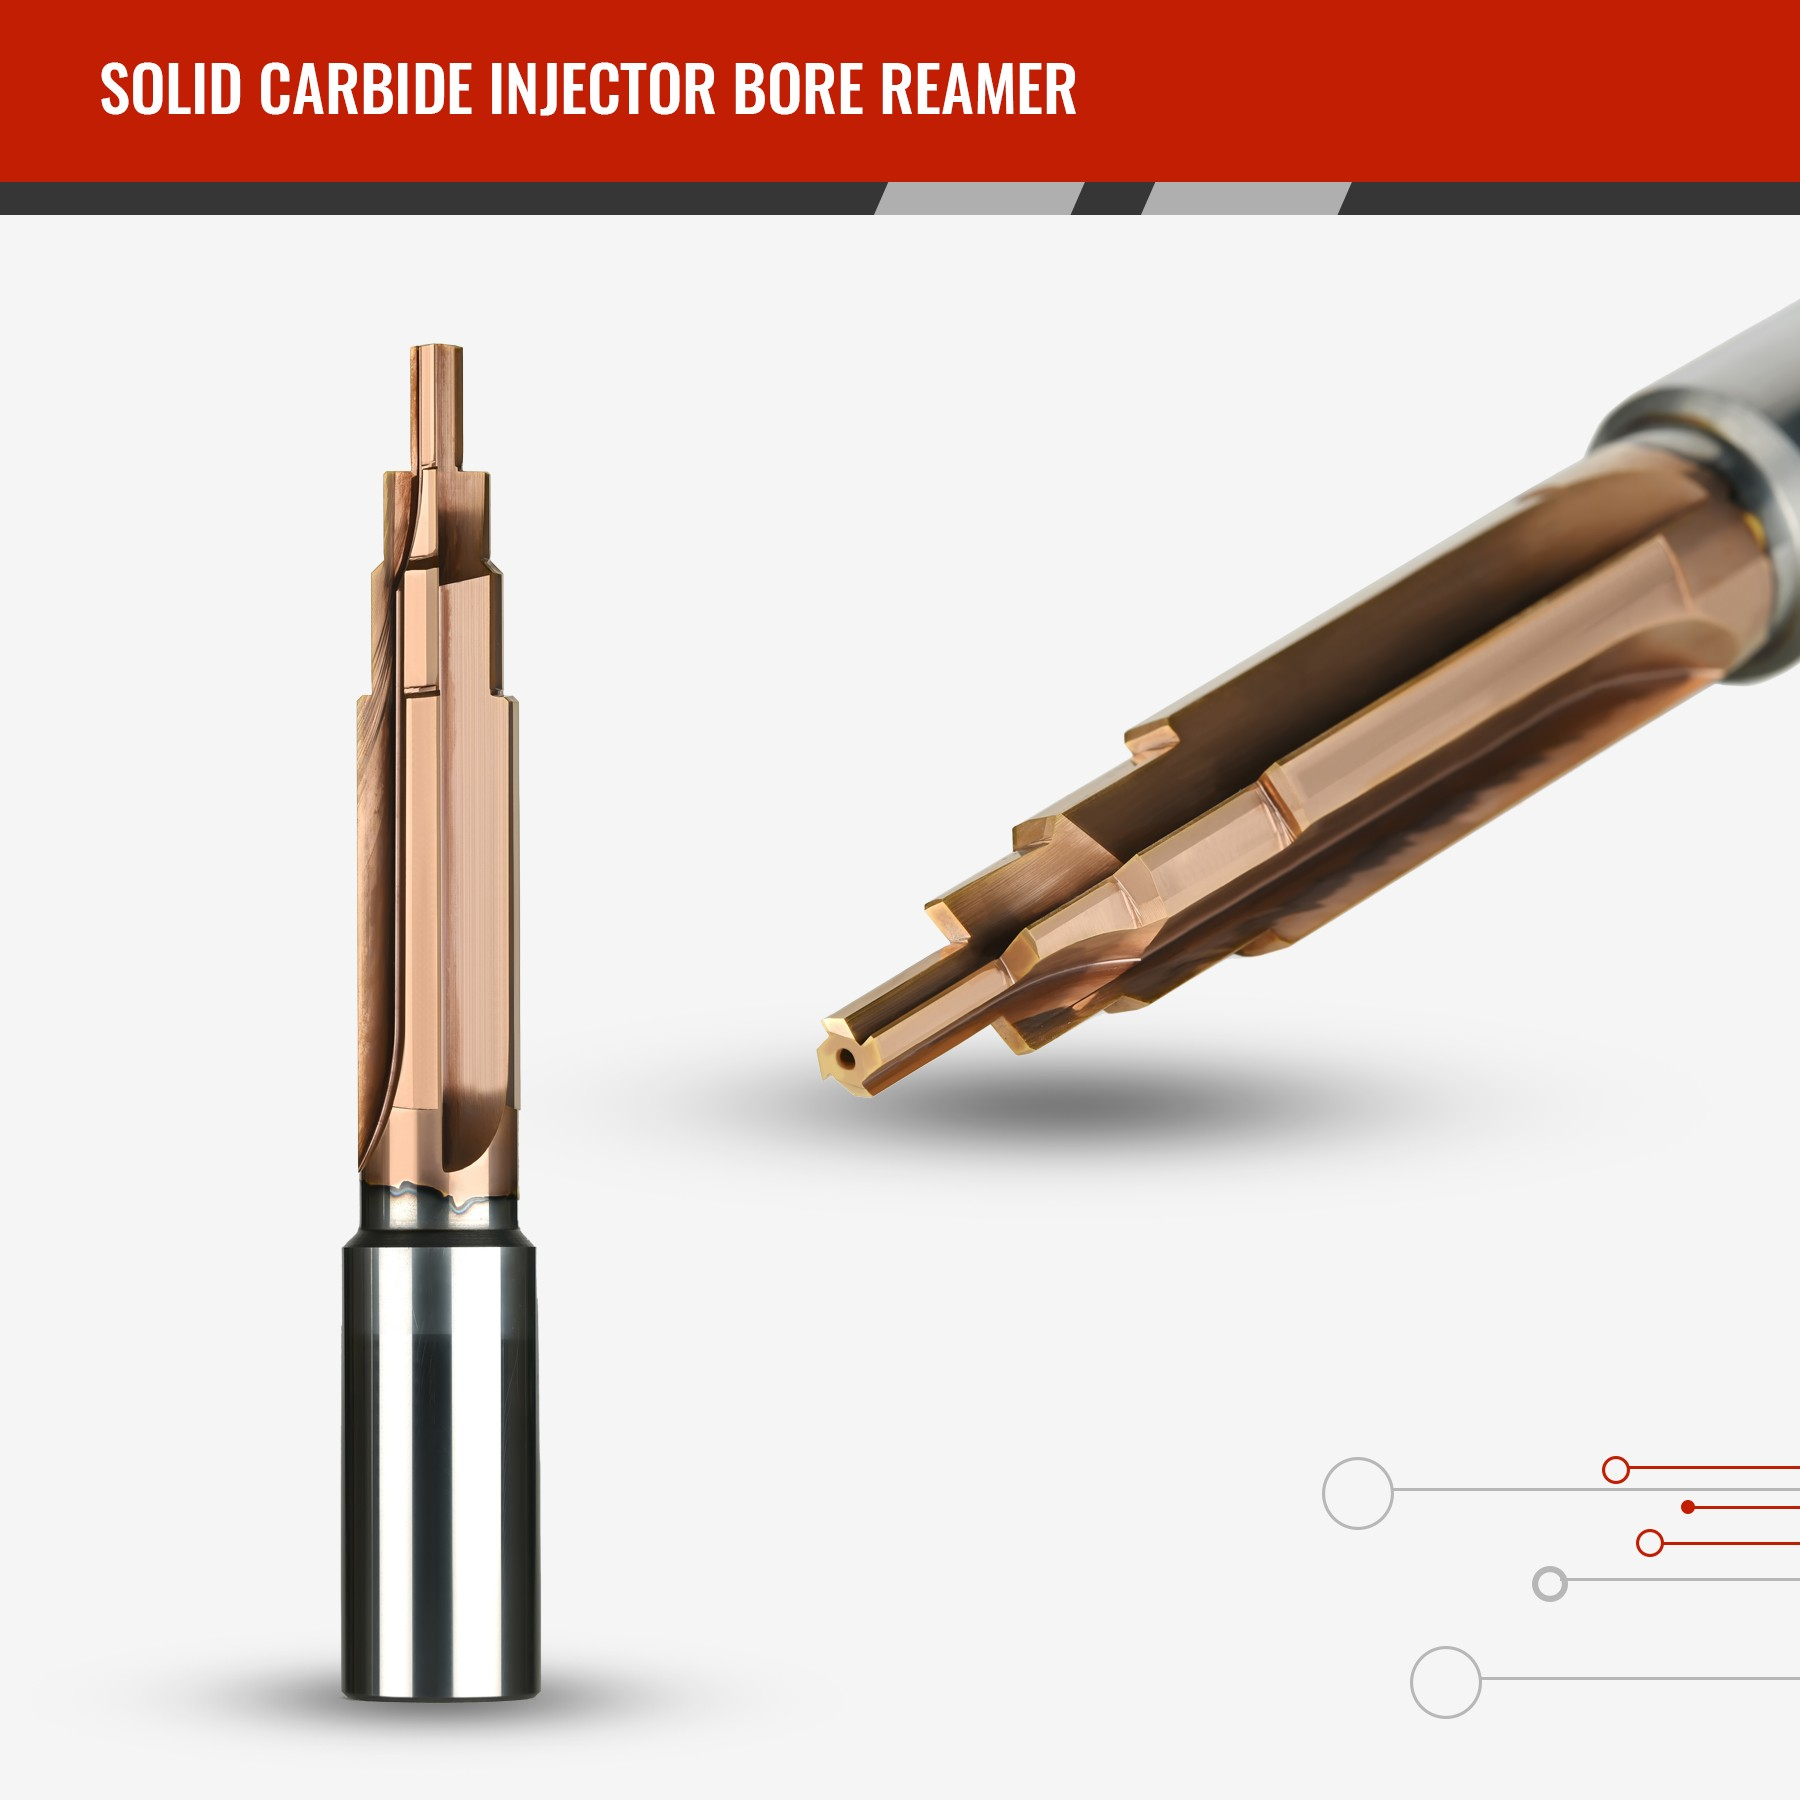 Solid Carbide Injector Bore Reamer